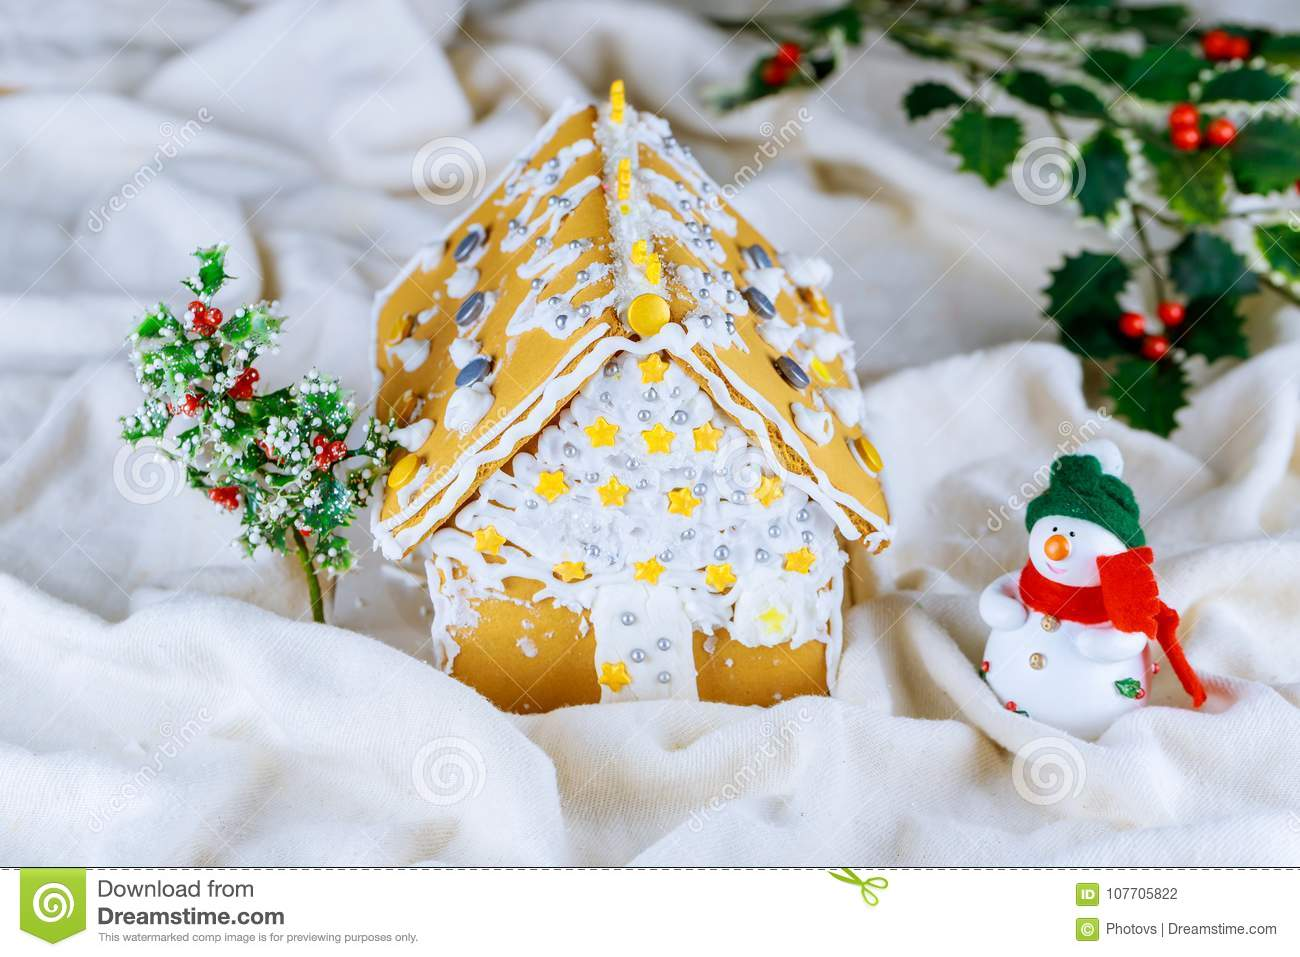 Homemade Gingerbread House With Christmas Decorations Artificial